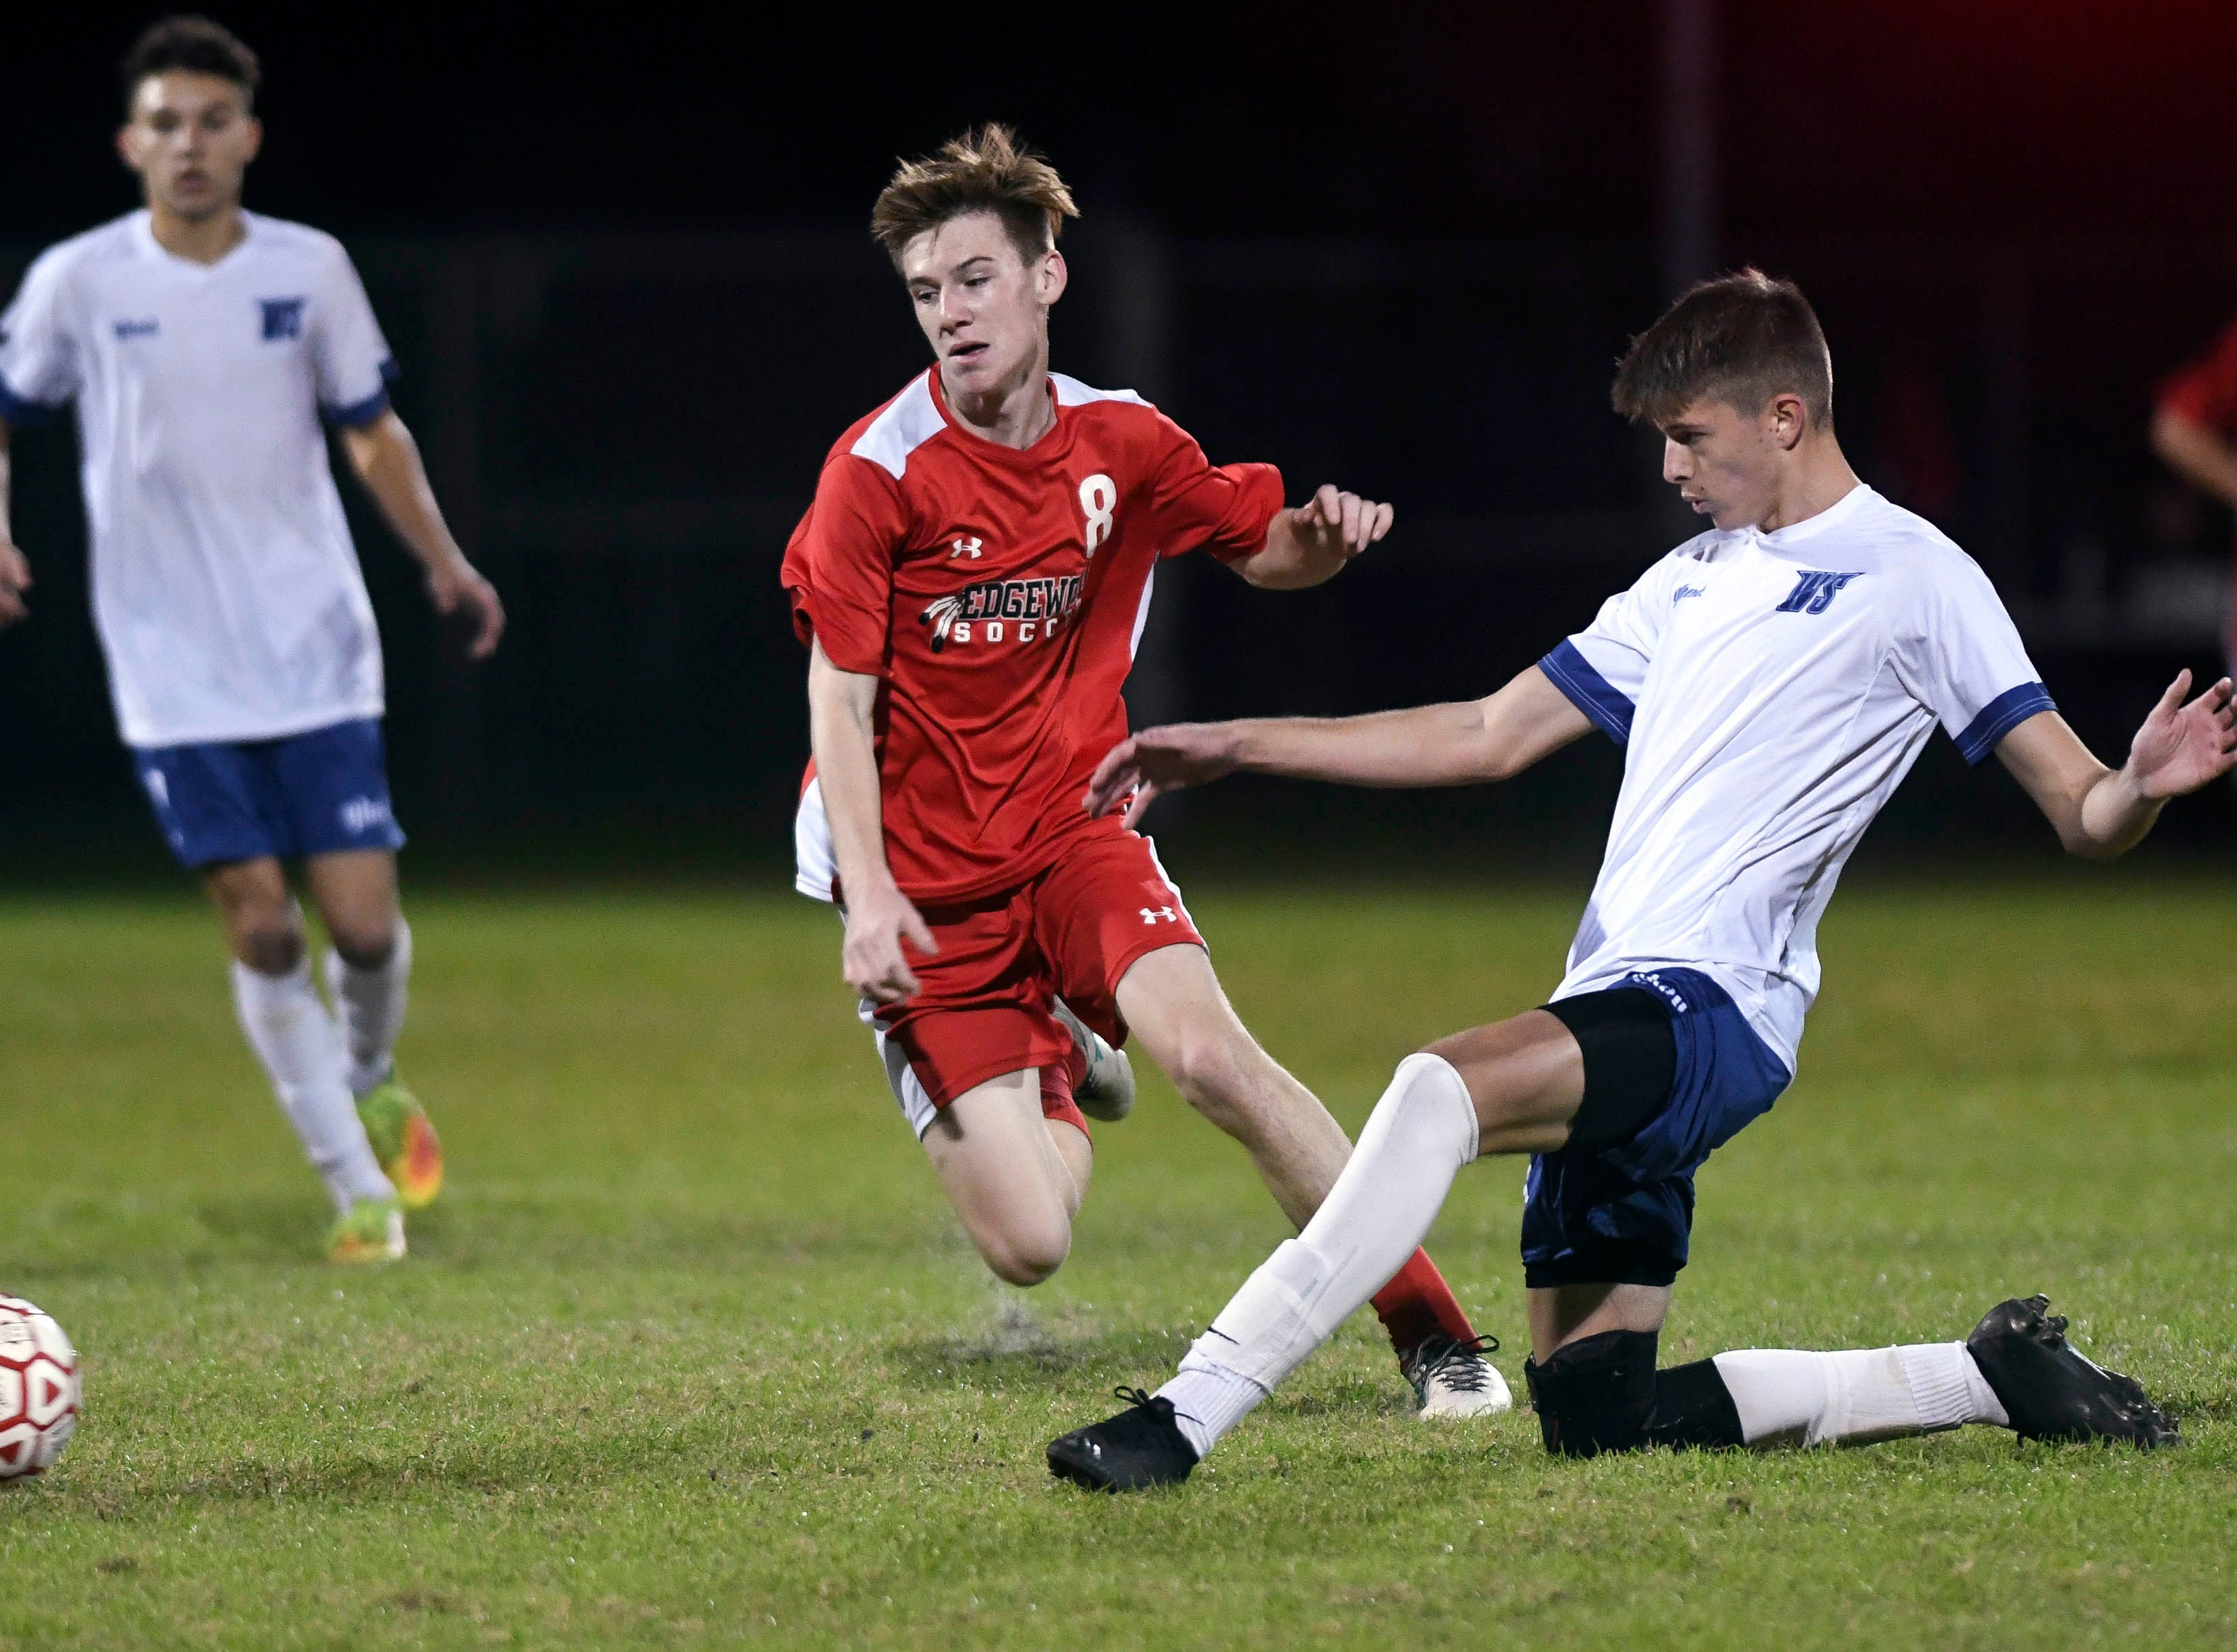 Grant Hester of West Shore directs the ball away from Scott Quigley of Edgewood during Thursday's Cape Coast Conference championship game.